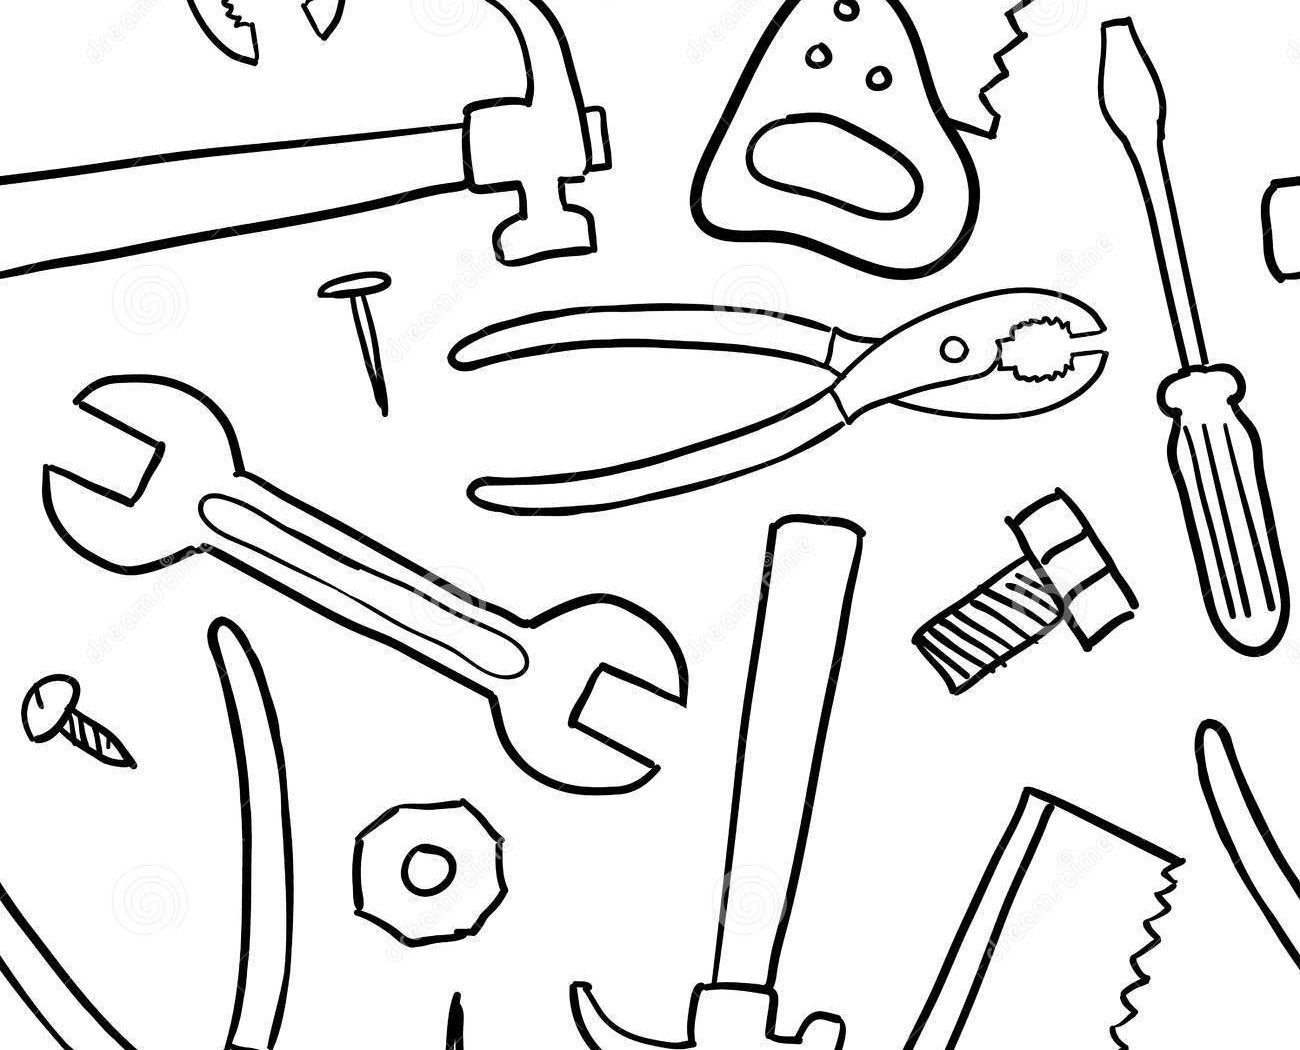 1300x1050 Construction Colotring Pages Tools Free Coloring For Kids